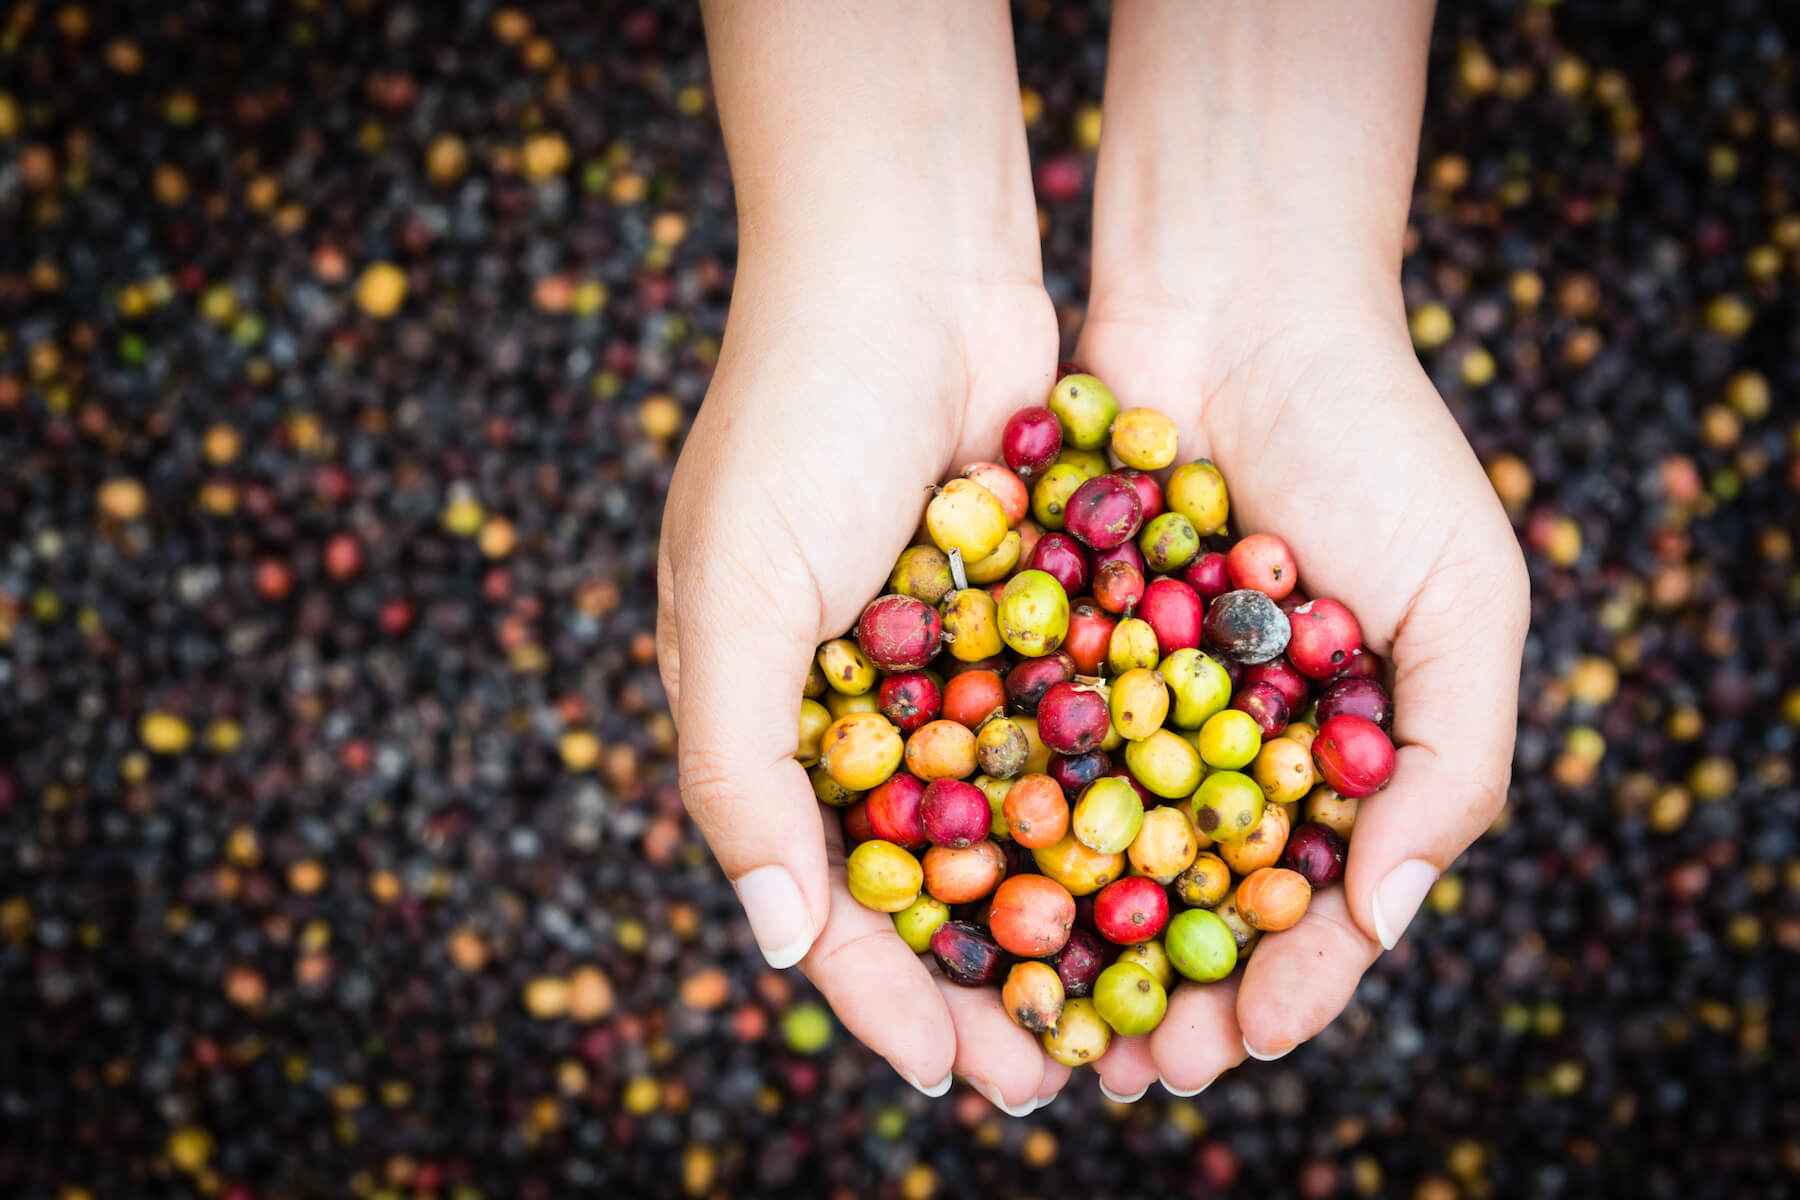 coffee cherries at different stages of ripeness in ladies hands